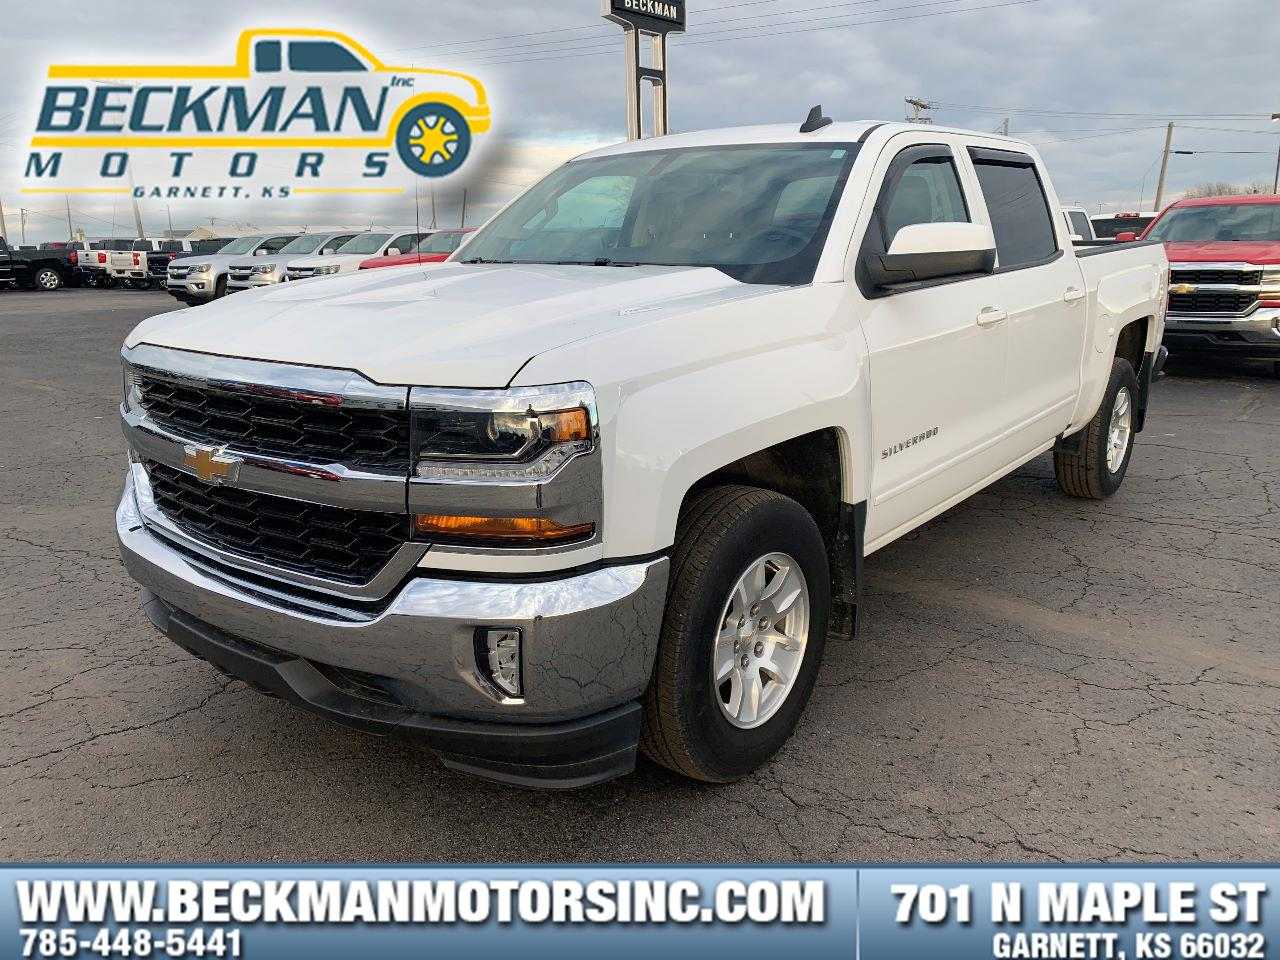 2017 Chevrolet Silverado 1500 LT Crew Cab Pickup - Short Bed